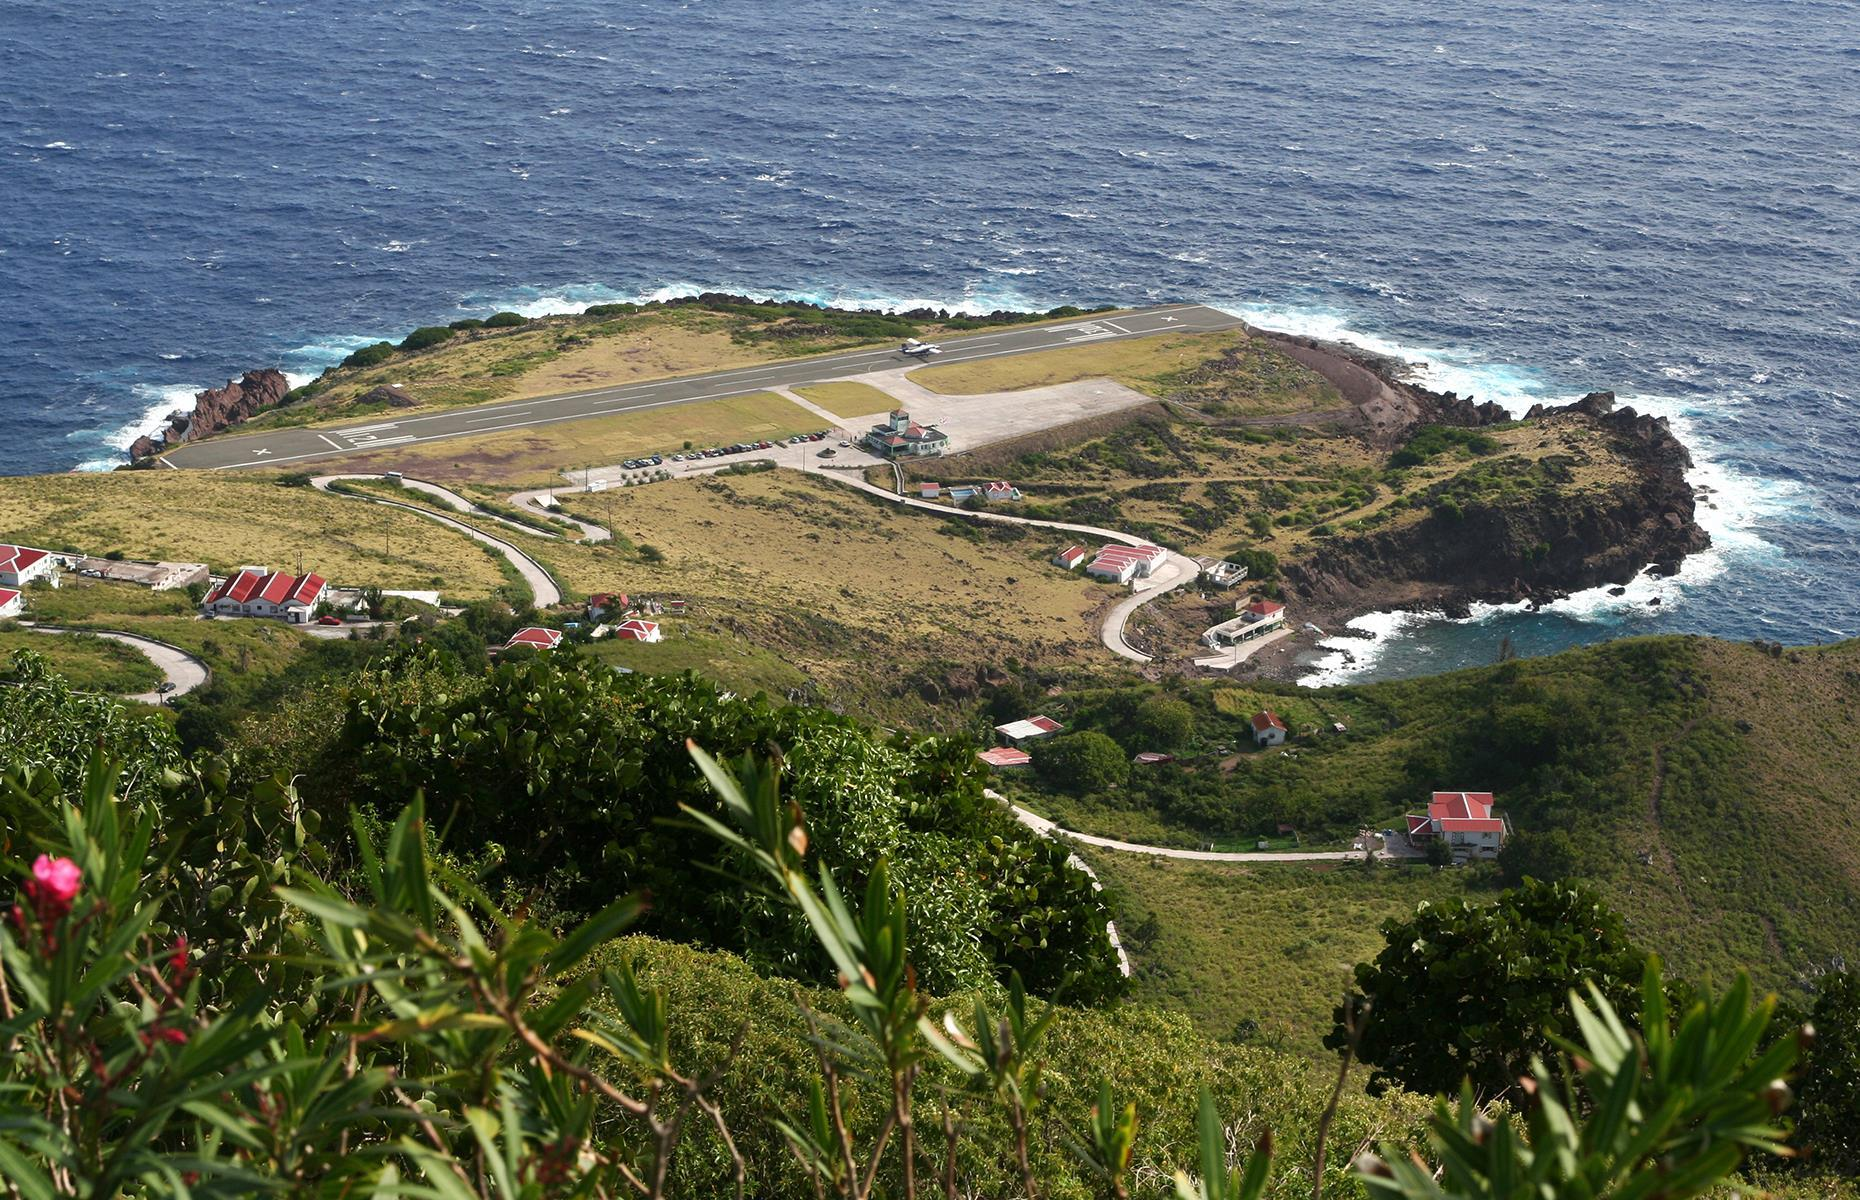 Slide 12 of 31: At only 1,312 feet (400m) long, the landing strip at Jauncho E. Yrausquin Airport is the shortest commercial runway in the world. Not only that, but with a steep drop into the sea at both ends, it makes for some nail-biting take-offs and landings.